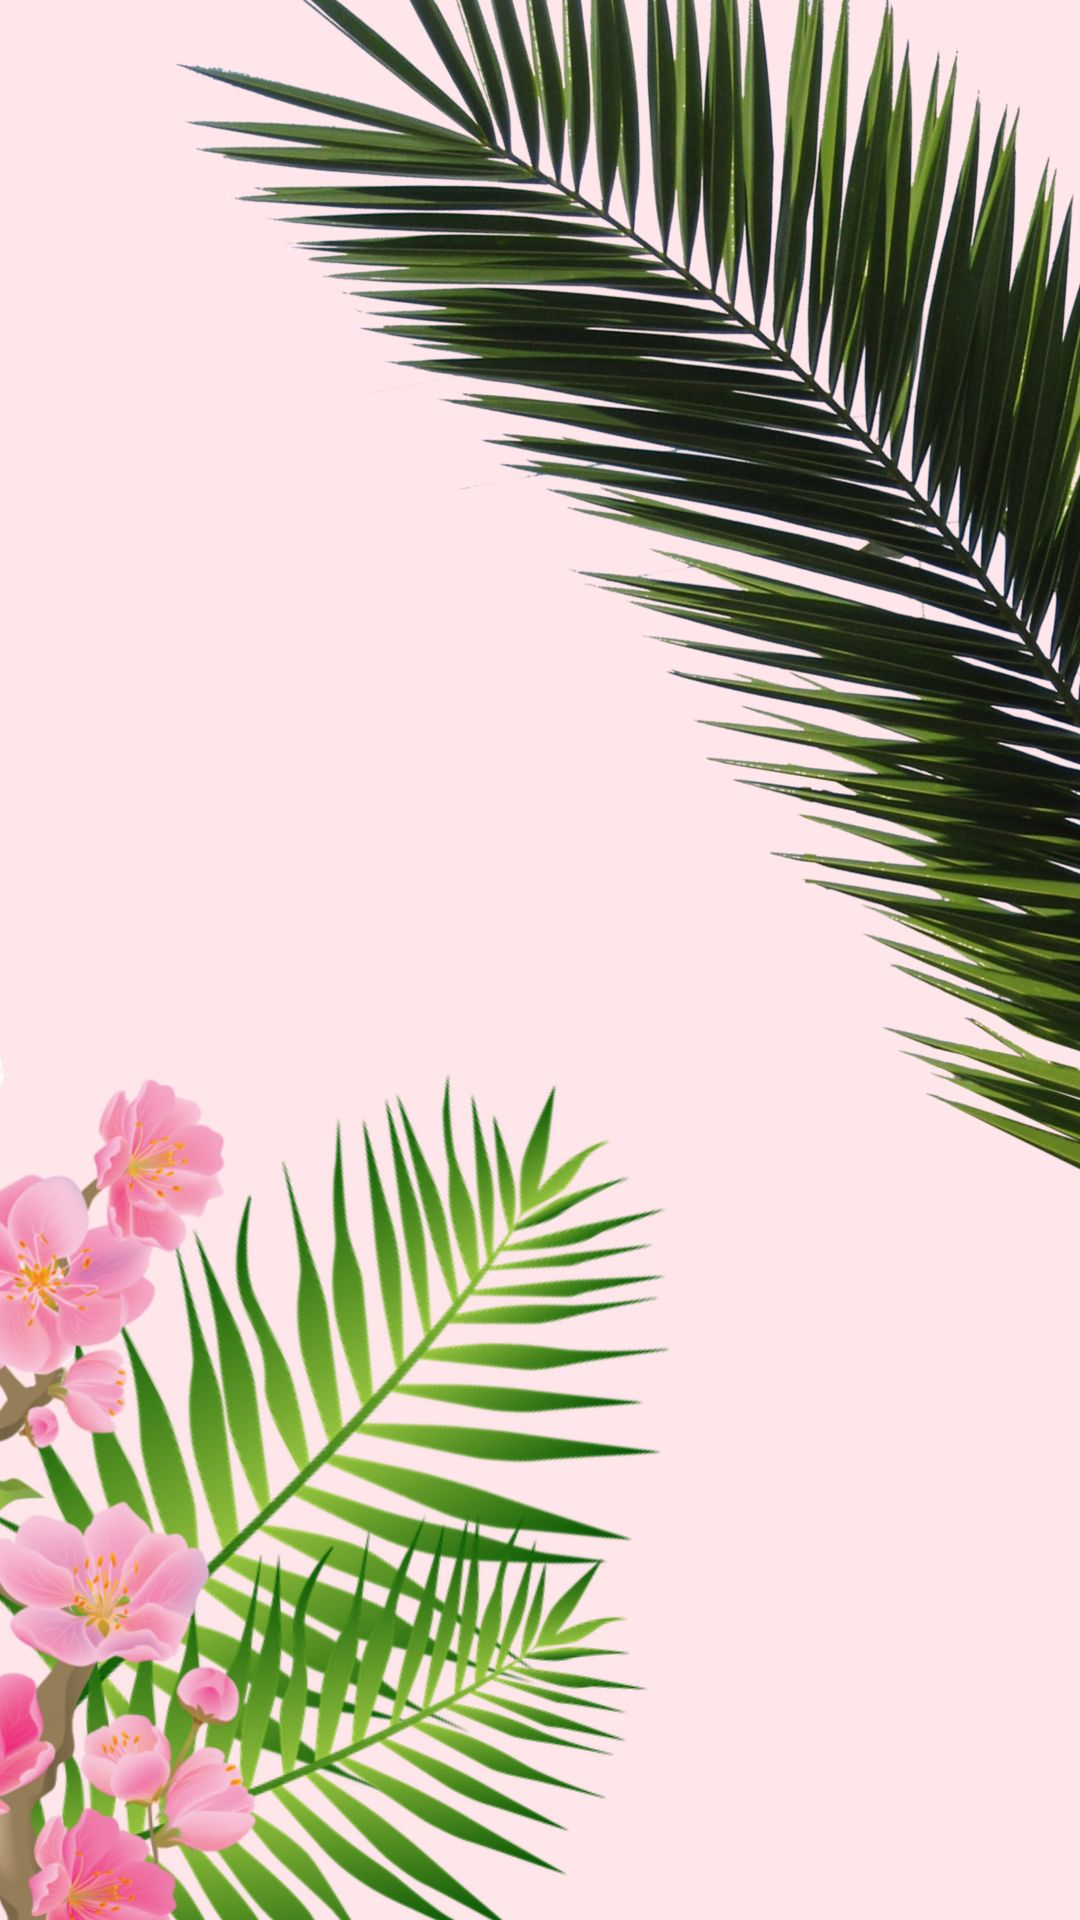 Tropical Wallpaper Iphone Background Pink Vintage Pastel